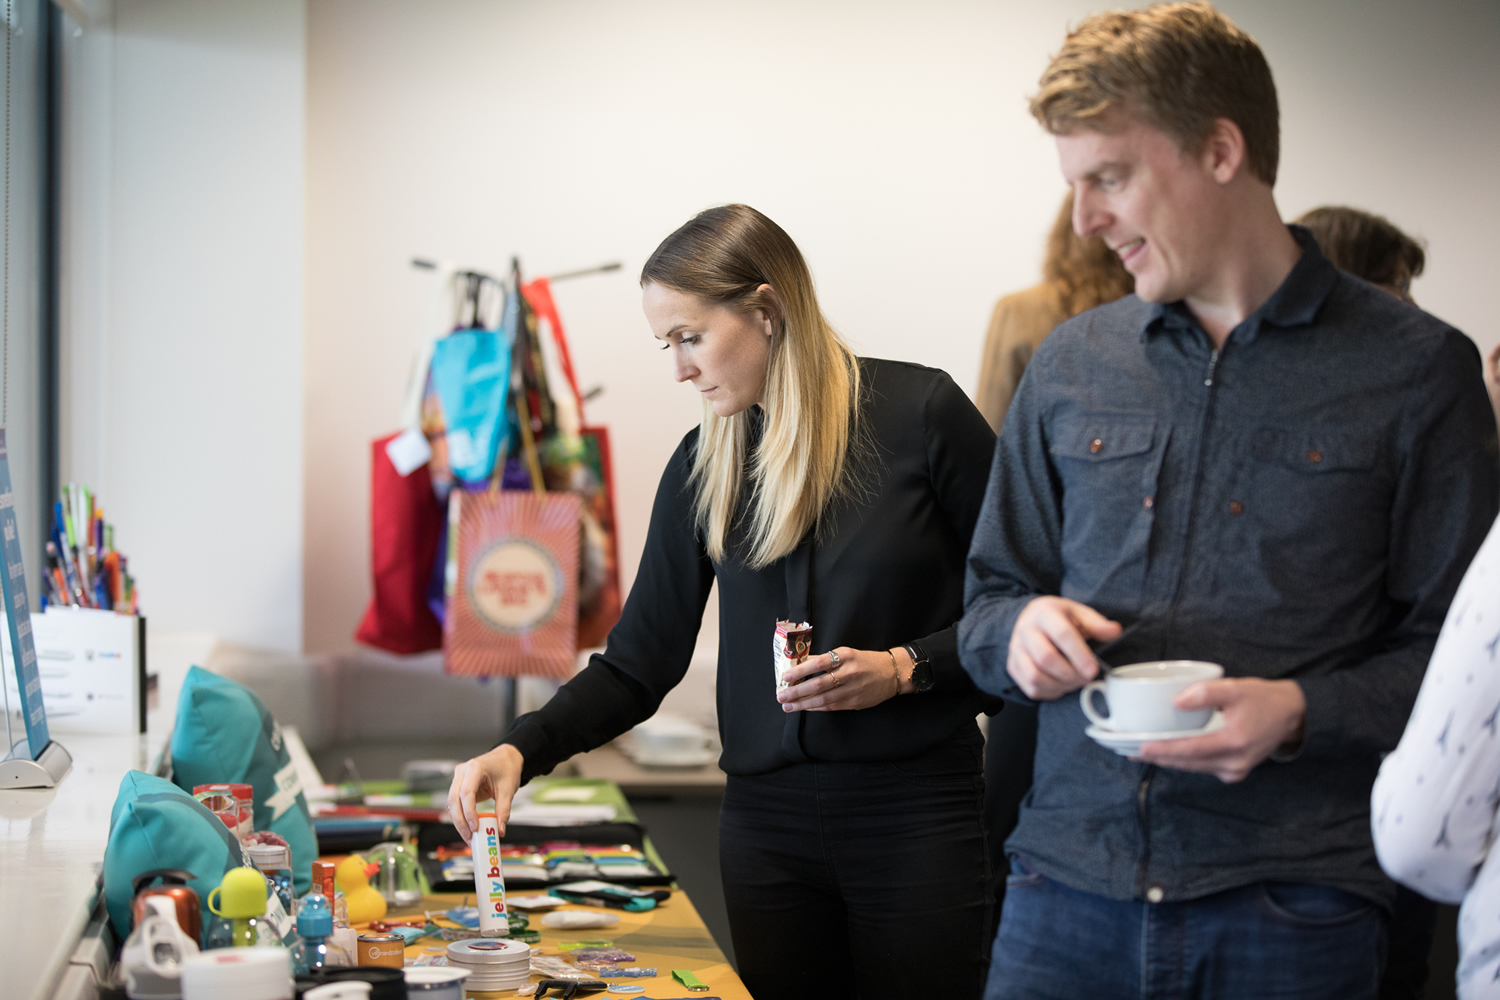 Conference delegates browse promotional merchandise